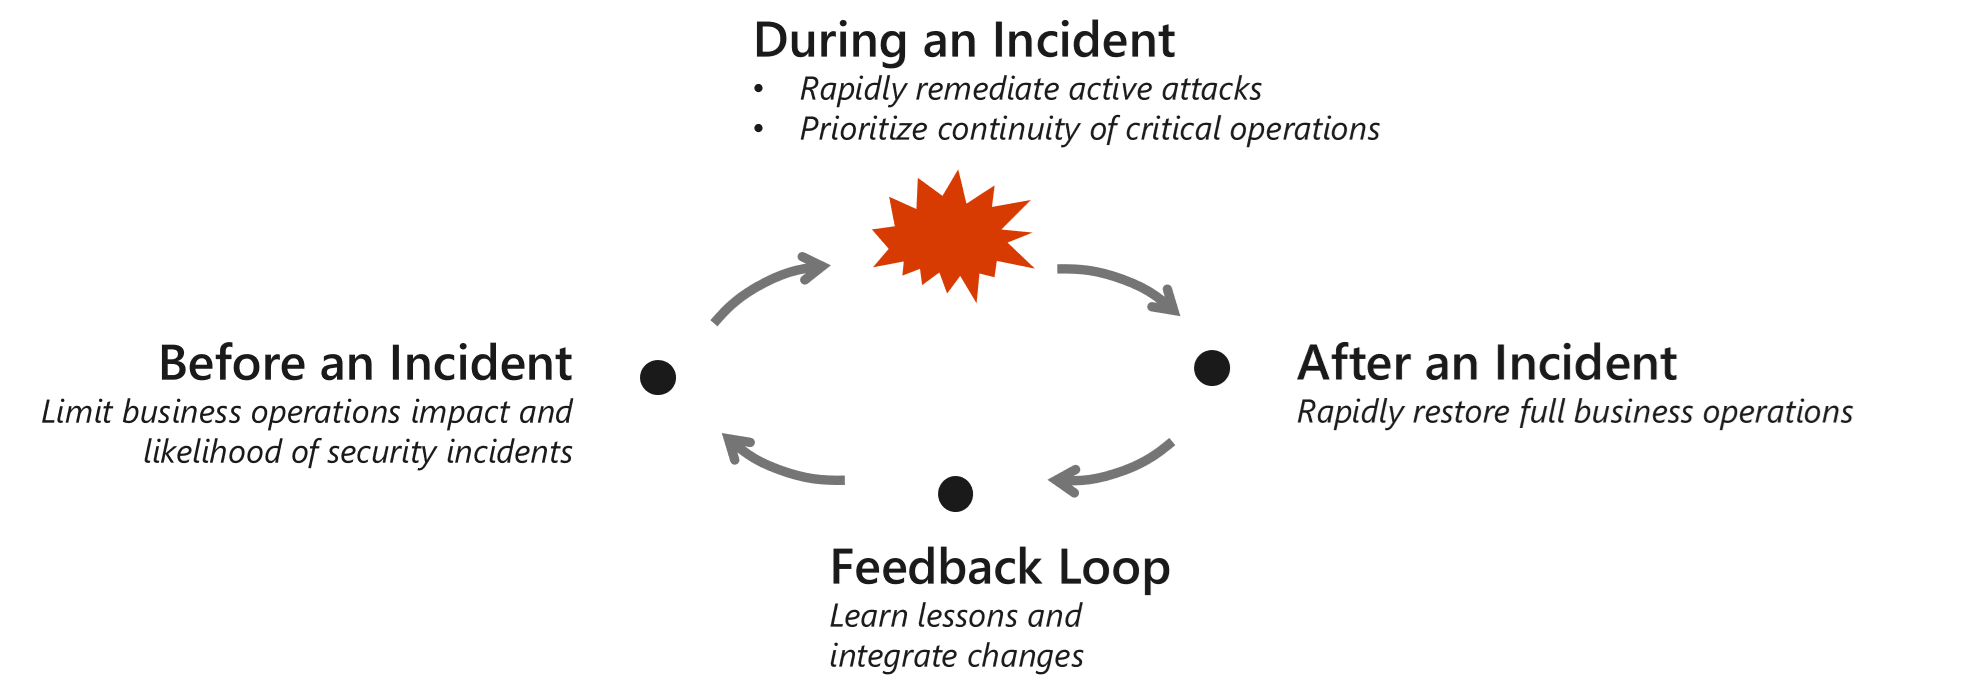 Visual chart depicting the four stages of the life cycle of an incident: Before, during, and after an incident and the lessons learned.